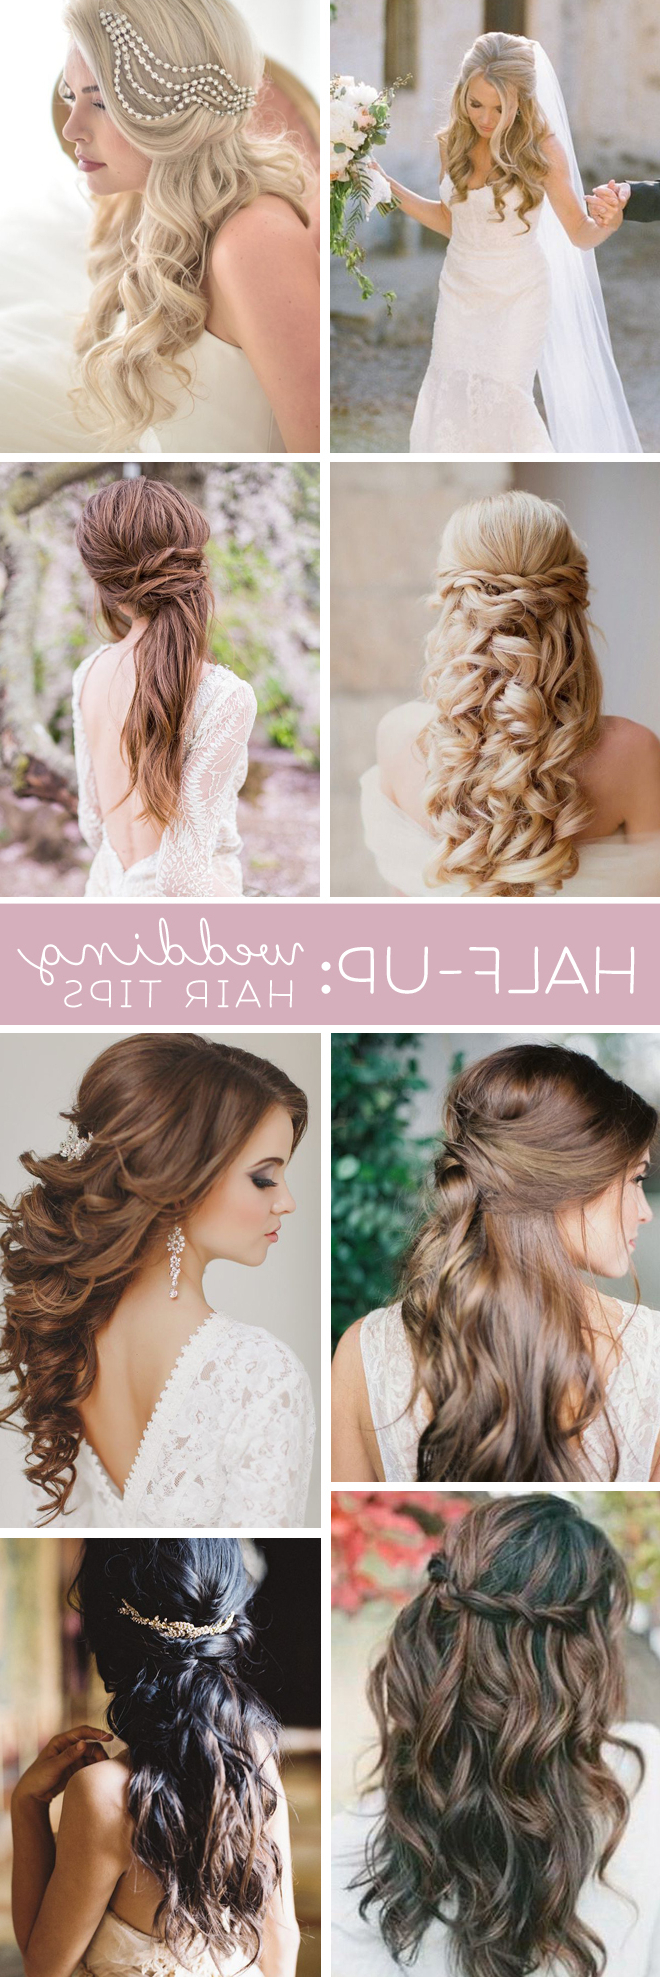 Wedding Hair Tips // Half Up + Half Down Styles With Preferred Blonde Half Up Bridal Hairstyles With Veil (View 9 of 20)